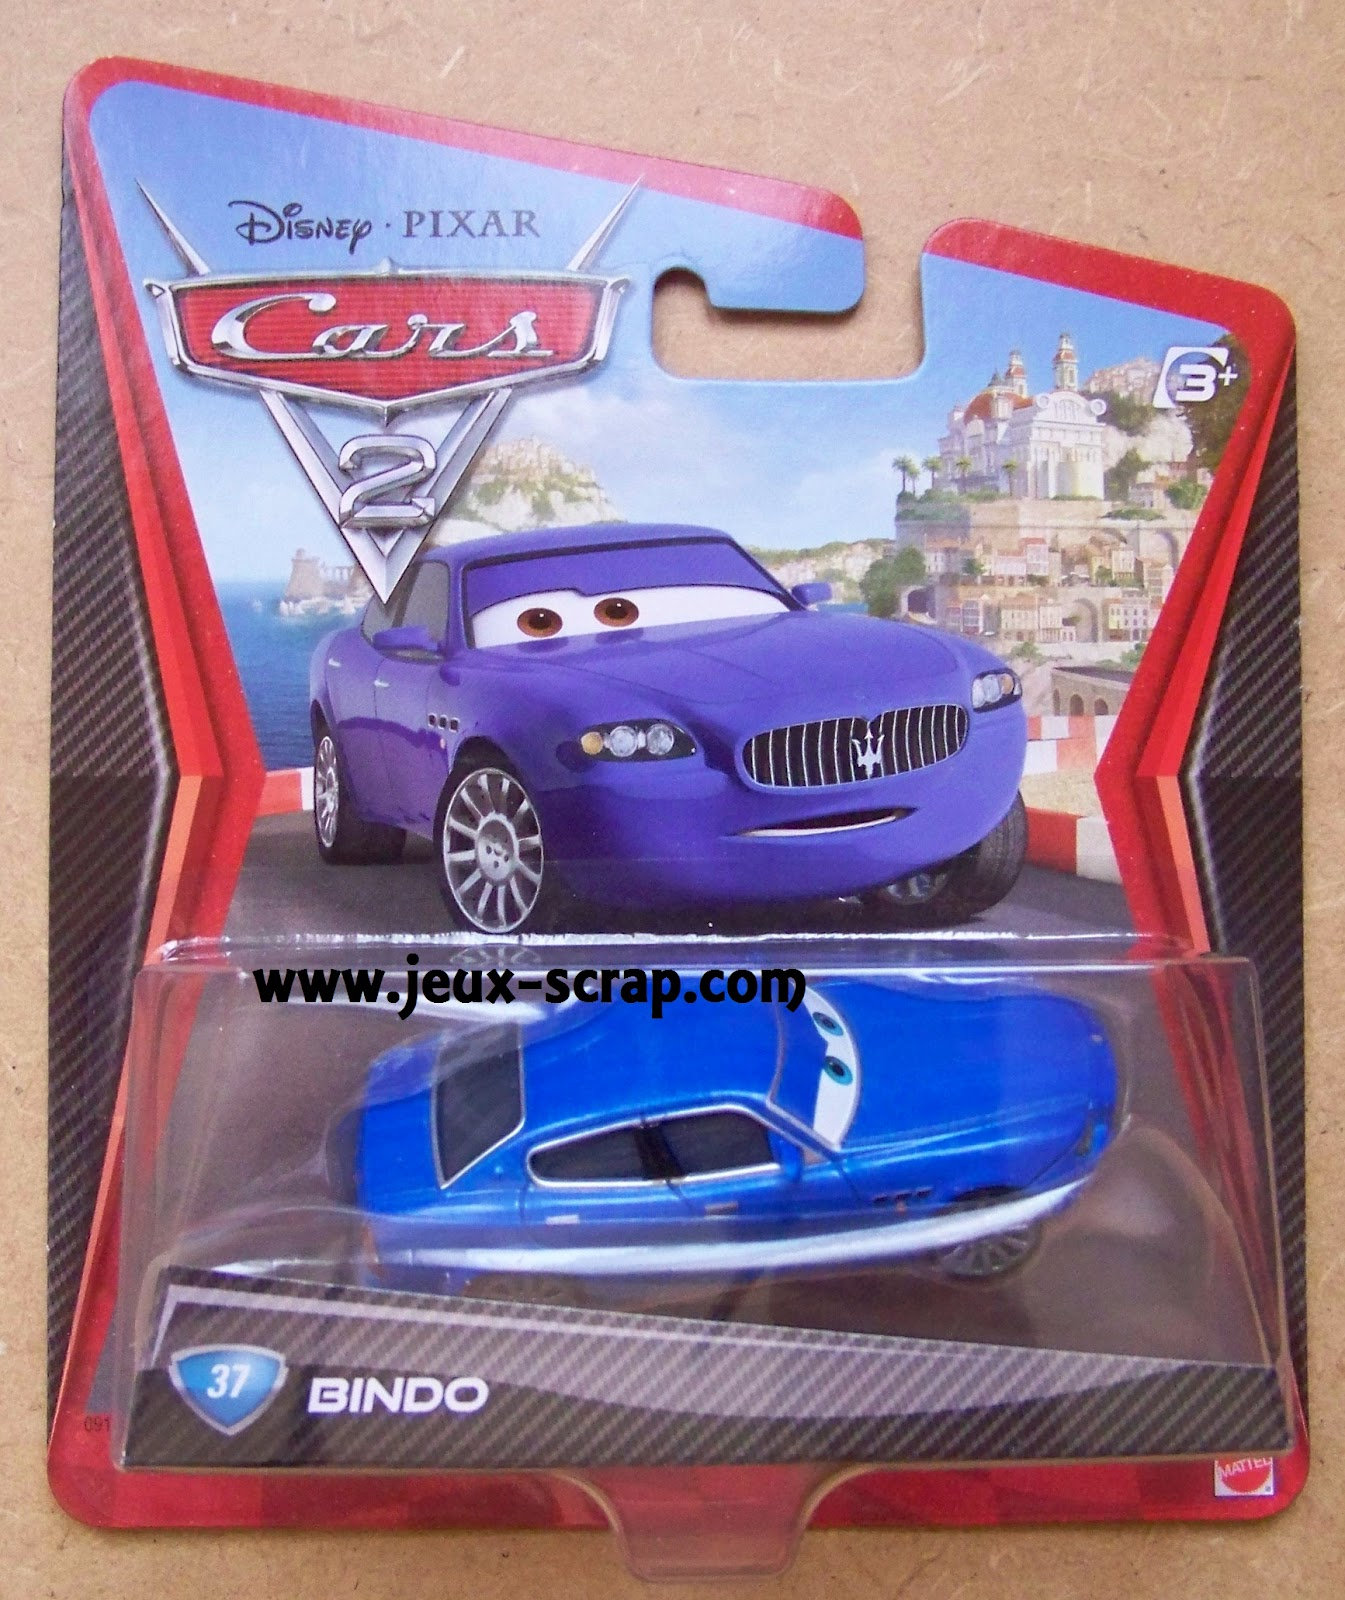 blog boutique jouets jeux scrap nouvelles voitures cars 2 1 55. Black Bedroom Furniture Sets. Home Design Ideas